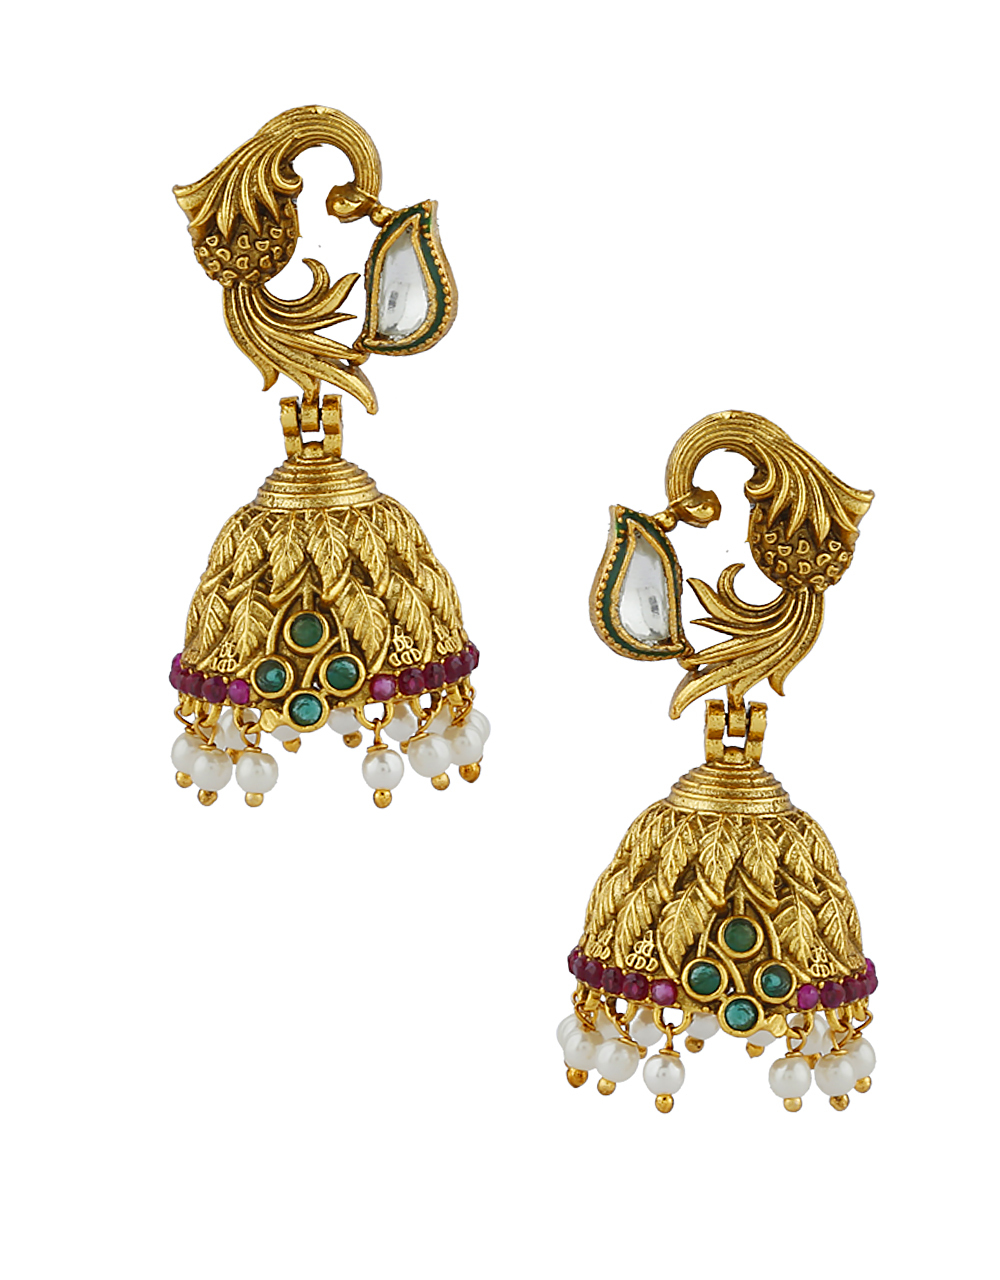 Antique Design With Gold Finish Pendant With Pair Of Earring For Women